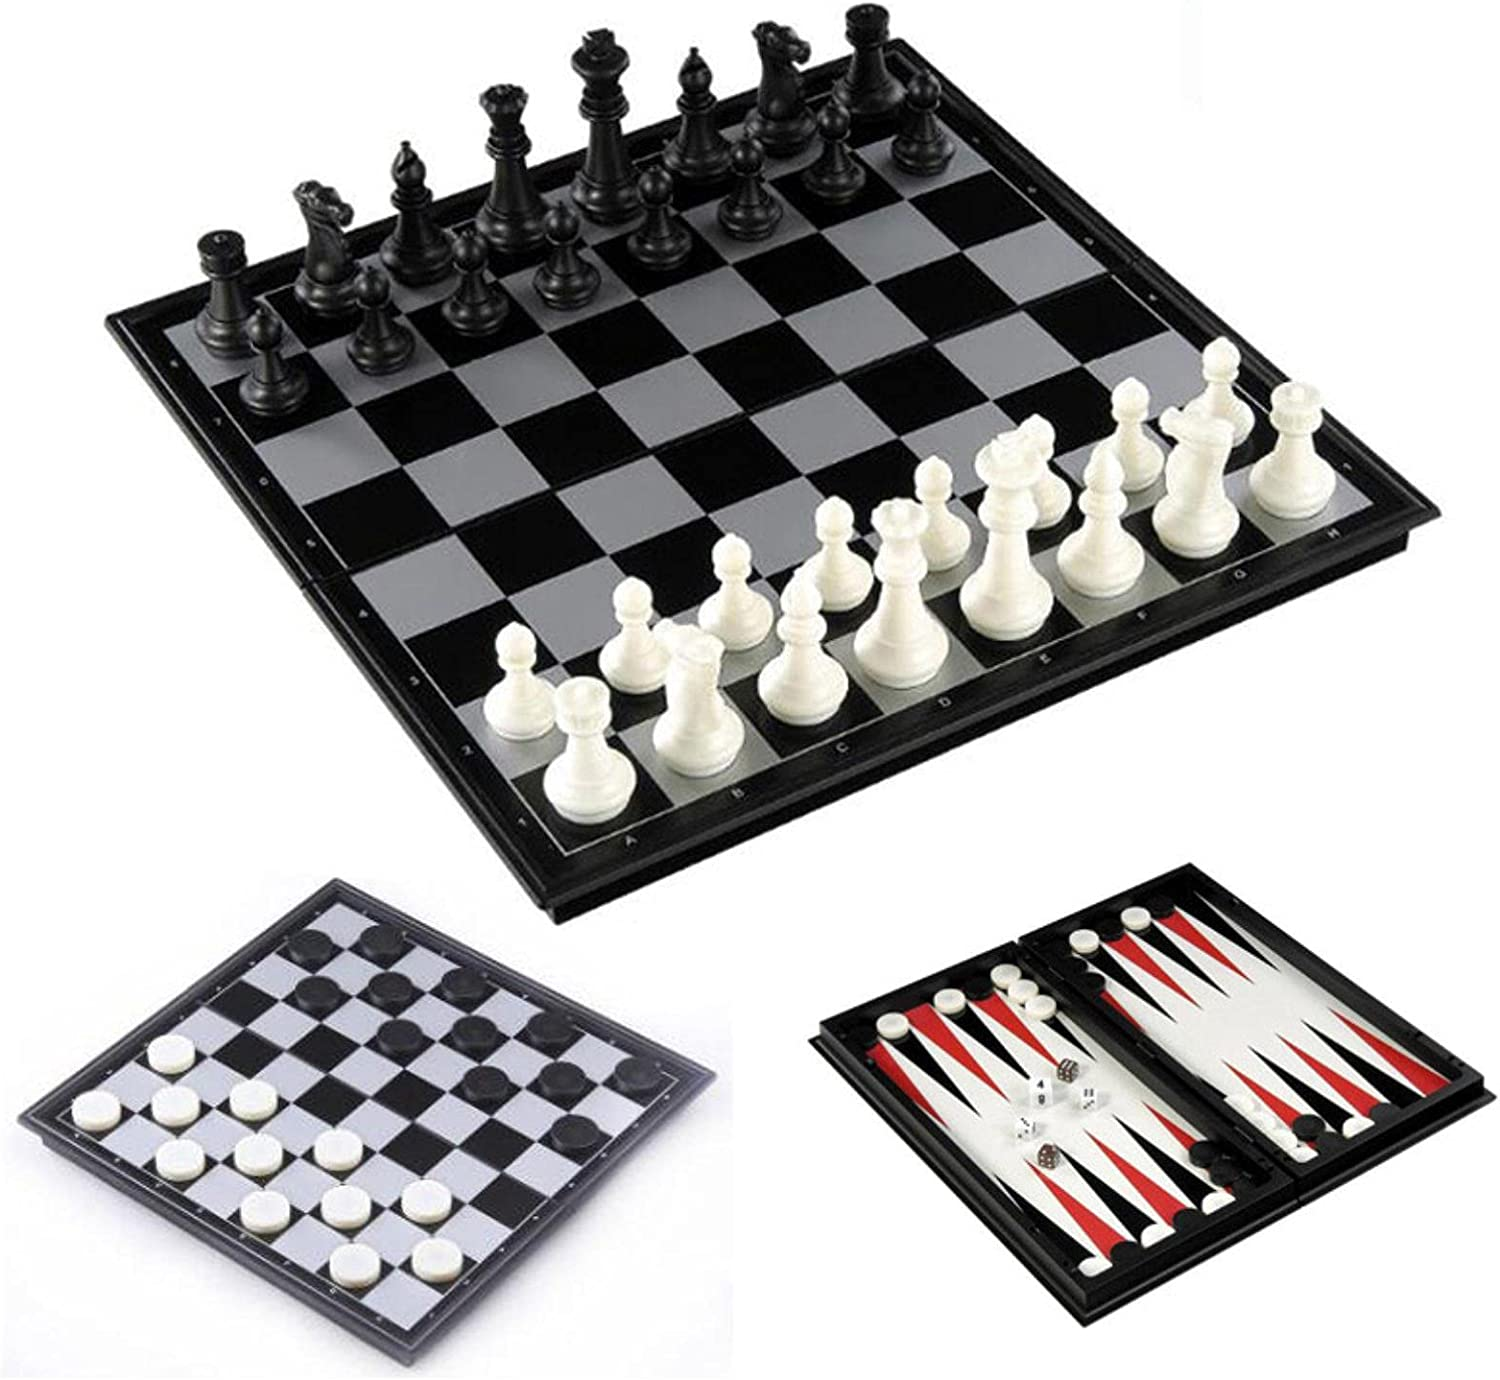 3-in-1 Houston Mall Travel Magnetic Chess Checkers Backgammon Gam Board Elegant and